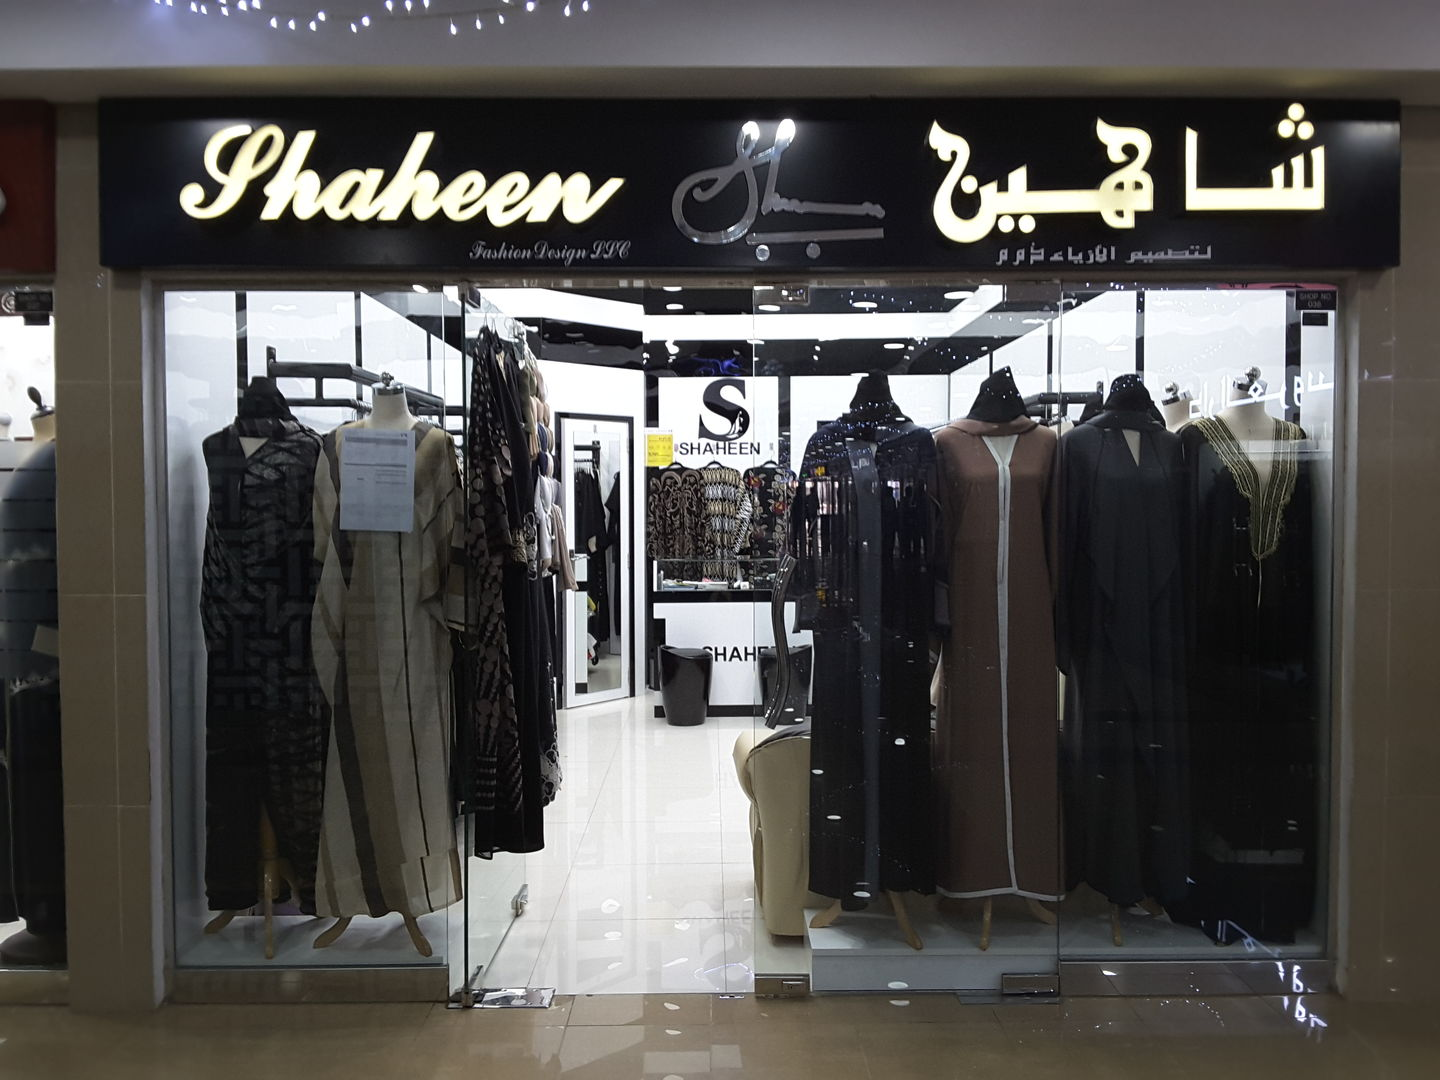 HiDubai-business-shaheen-fashion-design-shopping-apparel-mirdif-dubai-2